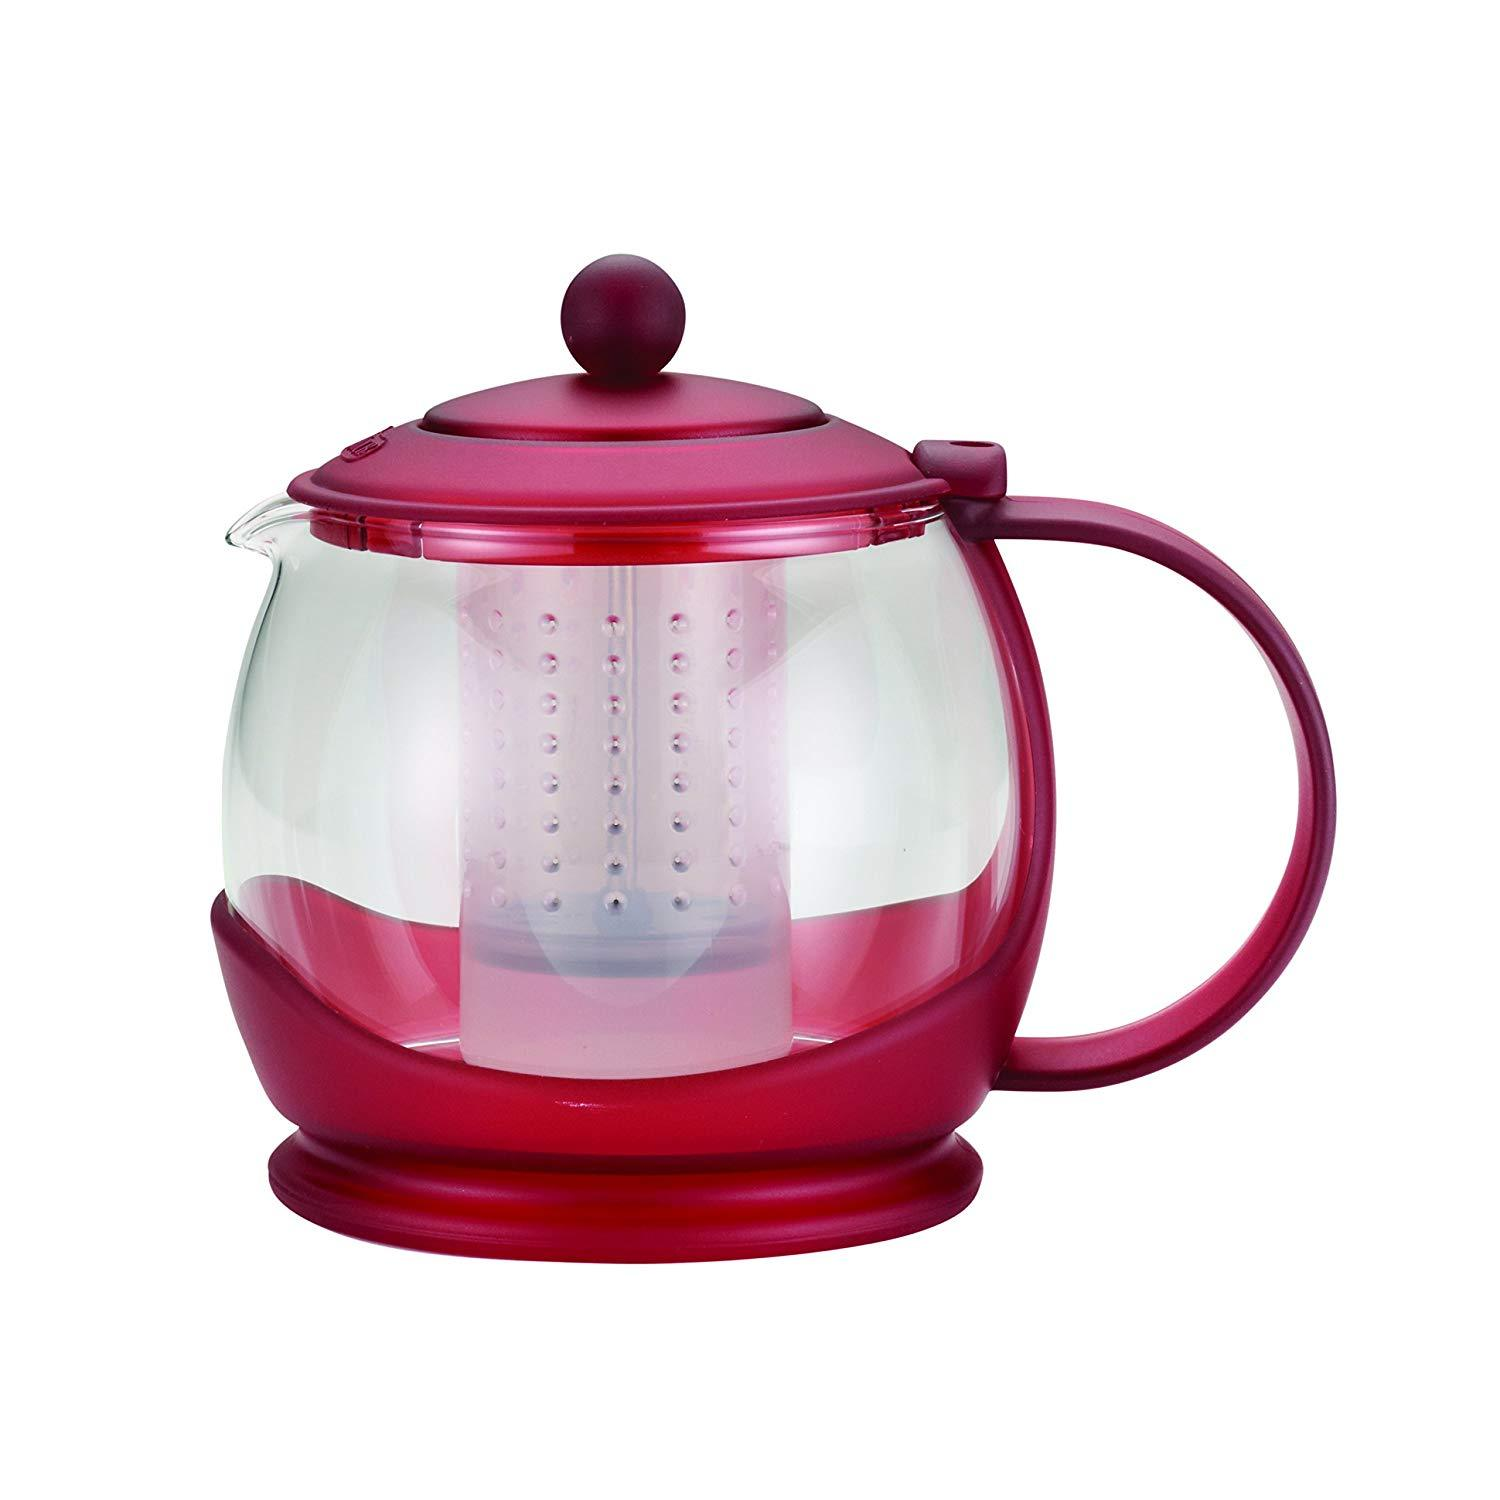 Bonjour 46022 Teapot with Flavor Lock System, 42oz, Red